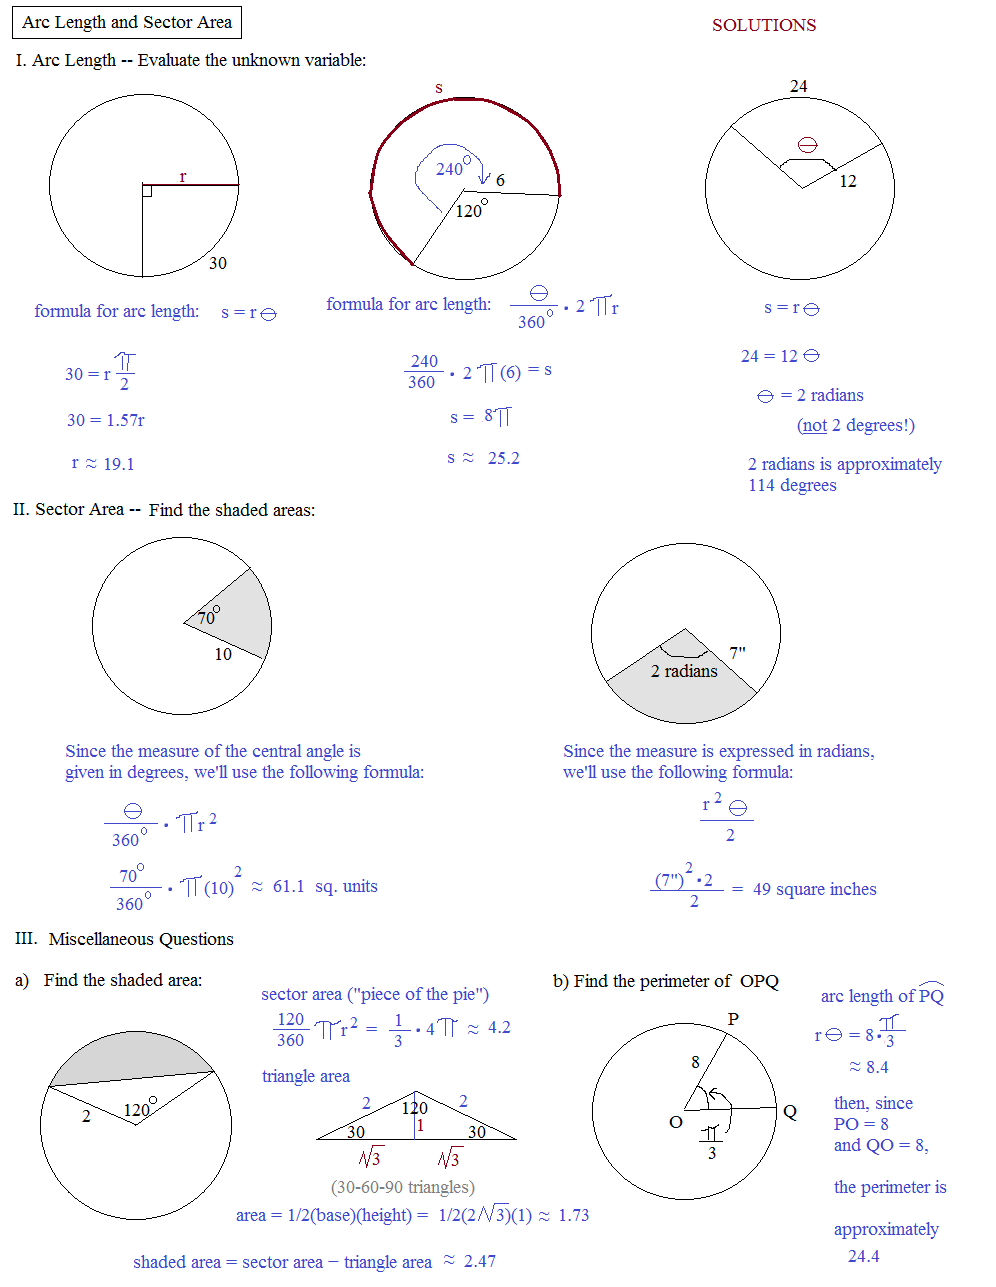 Math plane arc length sector area arc length and sector area quiz solutions ccuart Gallery